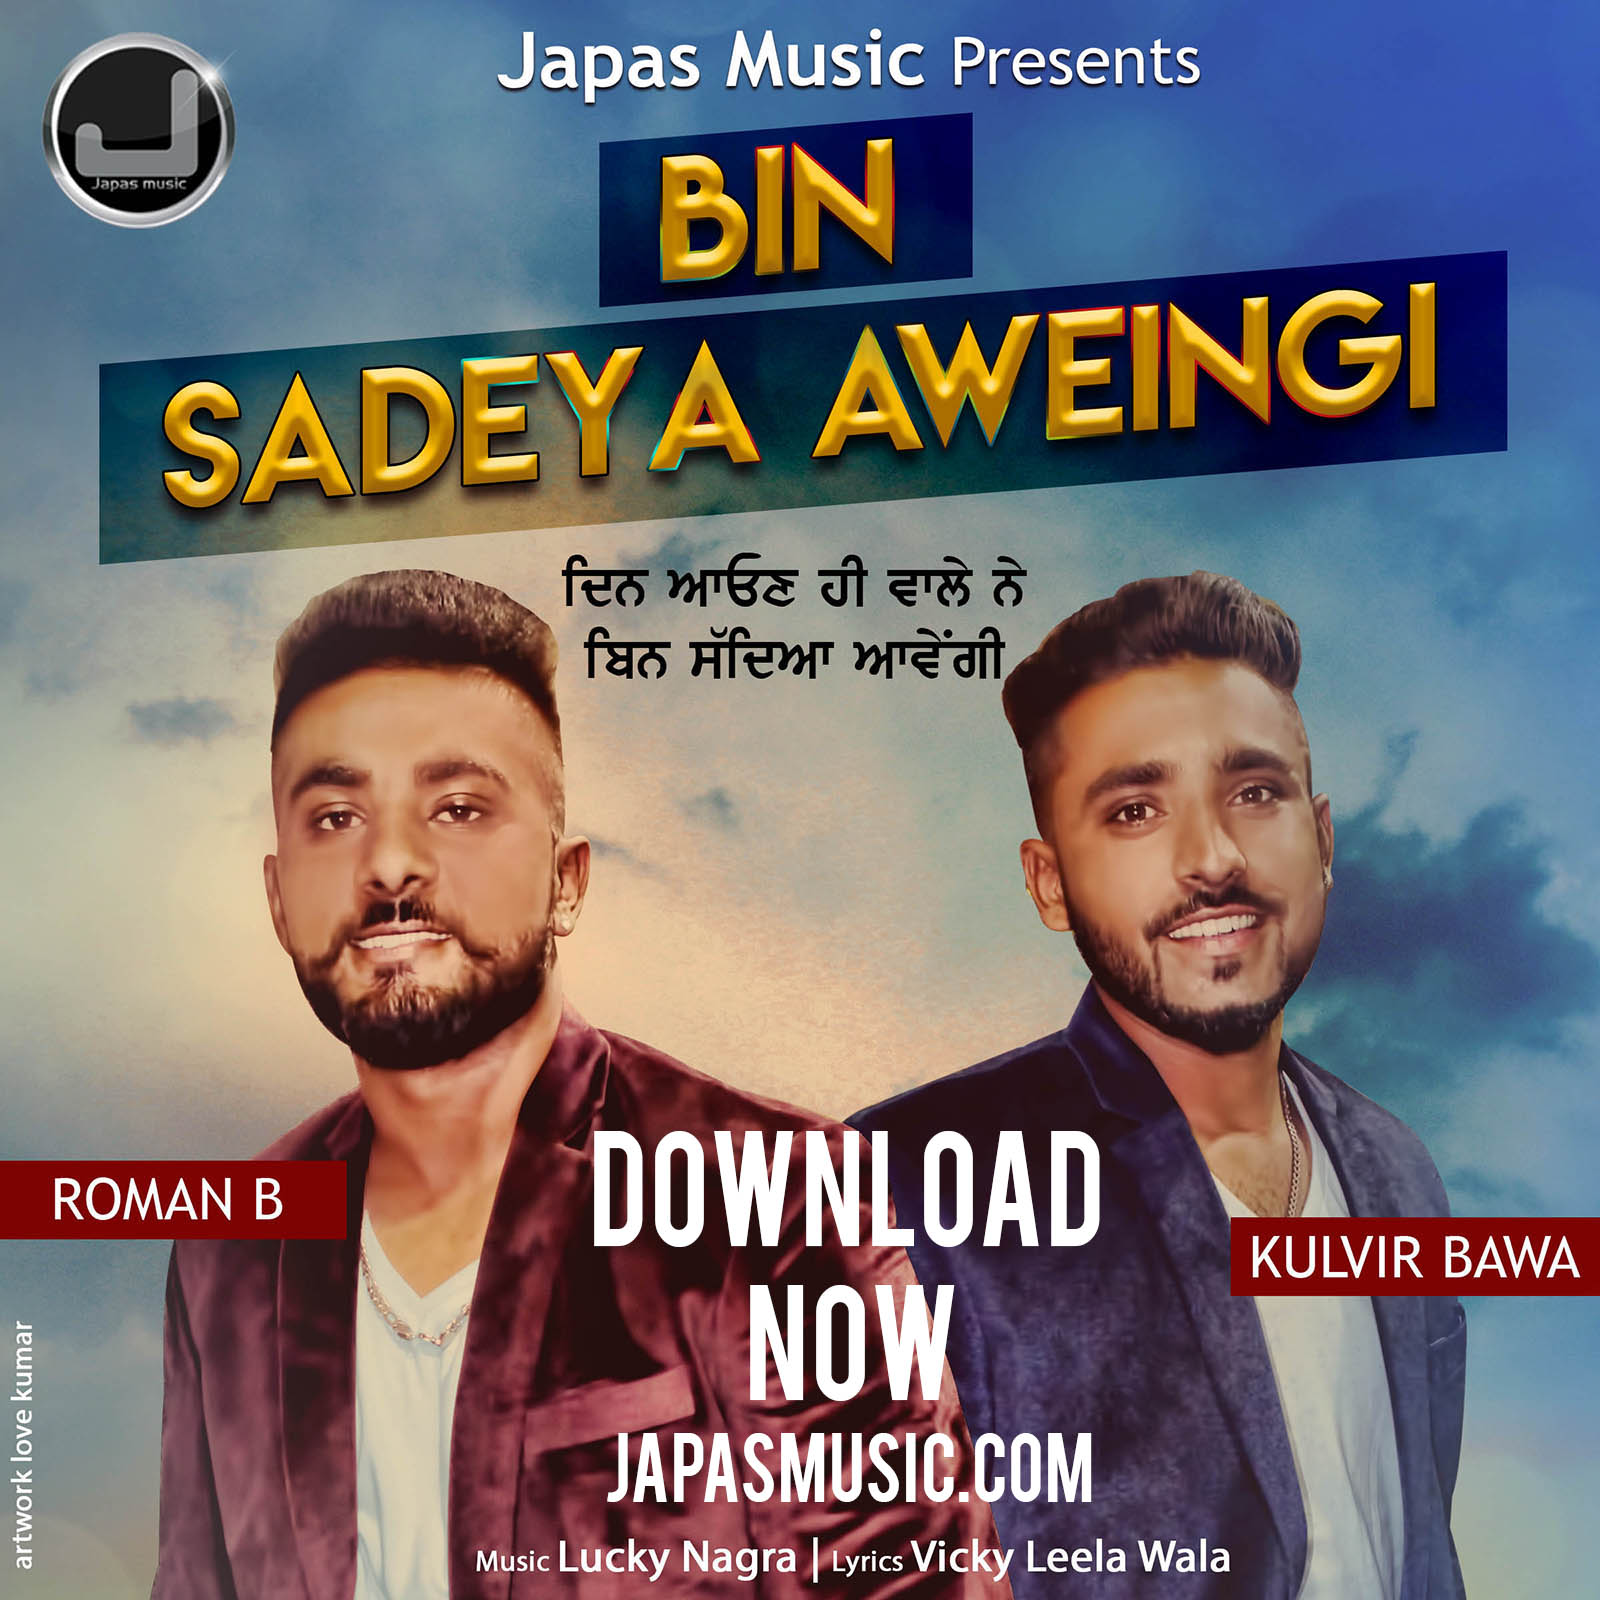 Bin Sadeya Aweingi Mp3 Download